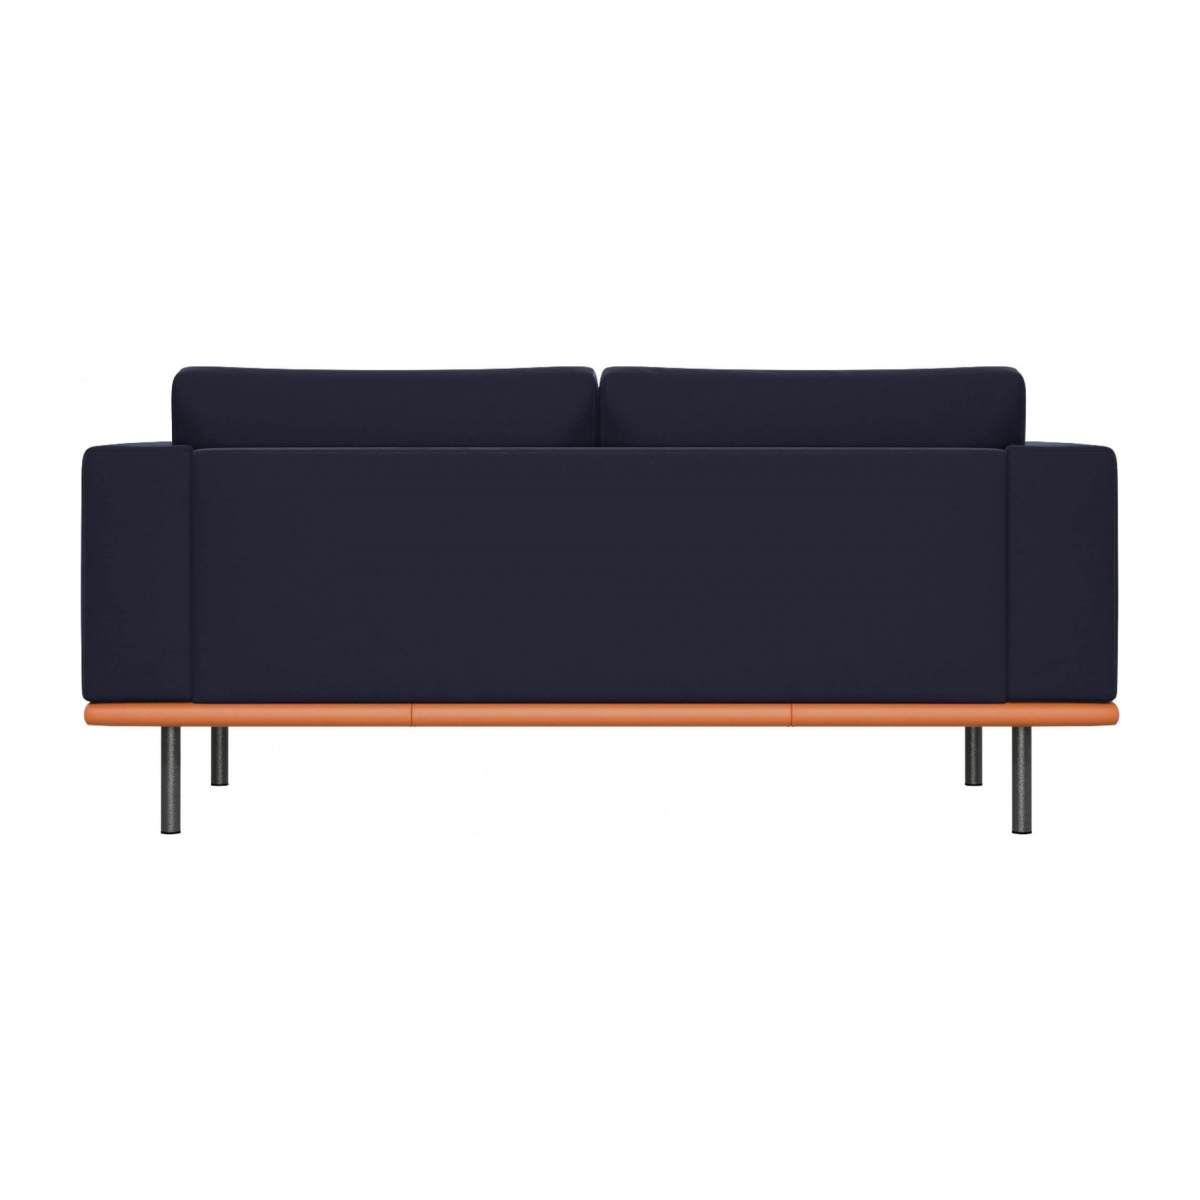 2 seater sofa in Super Velvet fabric, dark blue with base in brown leather n°4